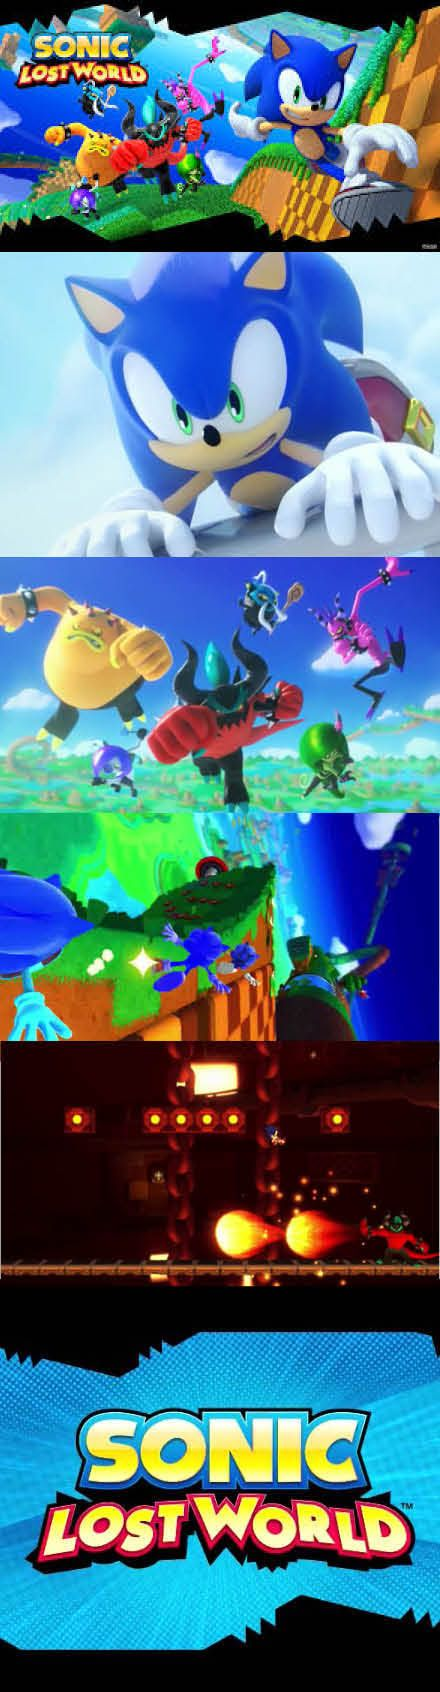 #Sonic Lost World does some good things but it's not classic Sonic! http://www.levelgamingground.com/sonic-lost-worlds-wii-u-review.html